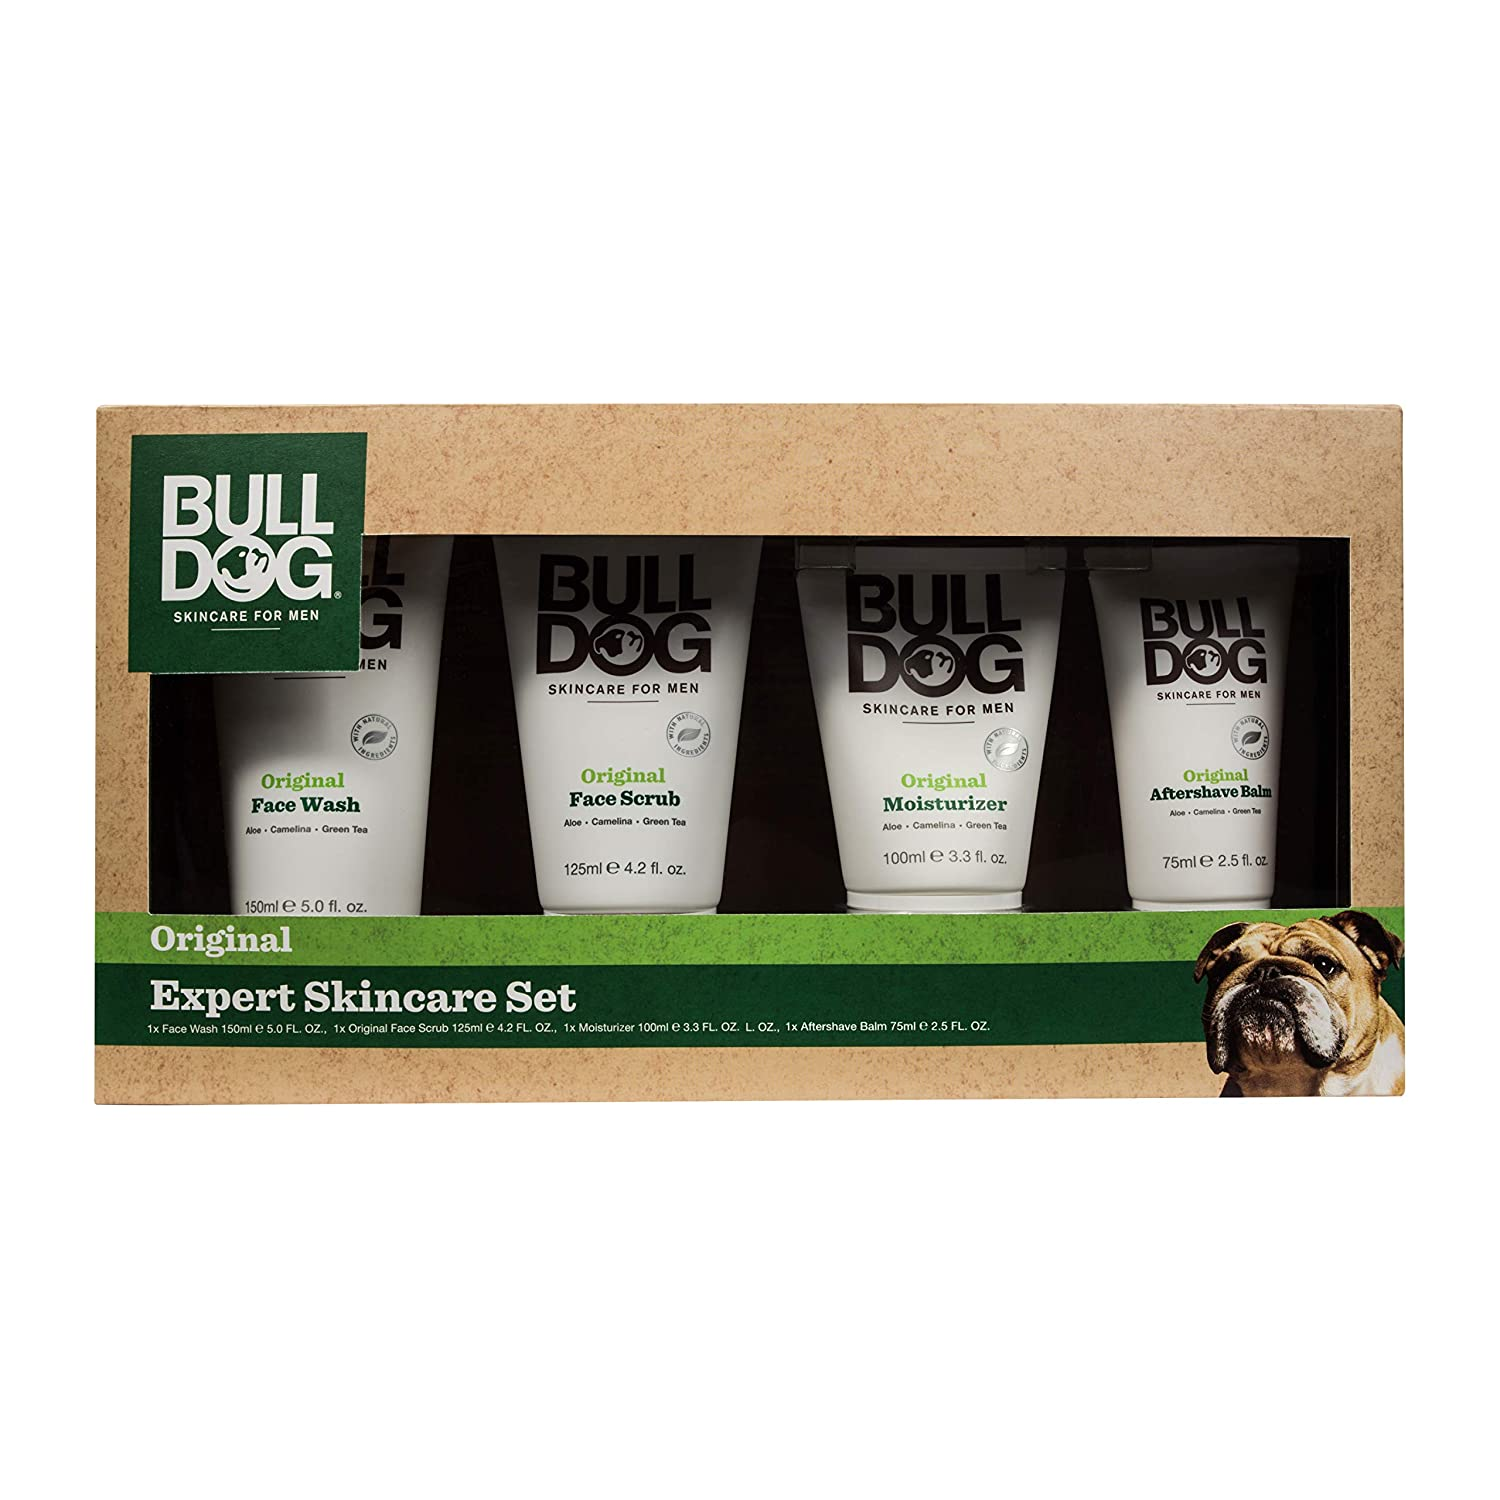 Bulldog Skincare Gift Set Including Shave gel, face Wash, Facial Moisturizer & Aftershave Balm Expert Skincare Set